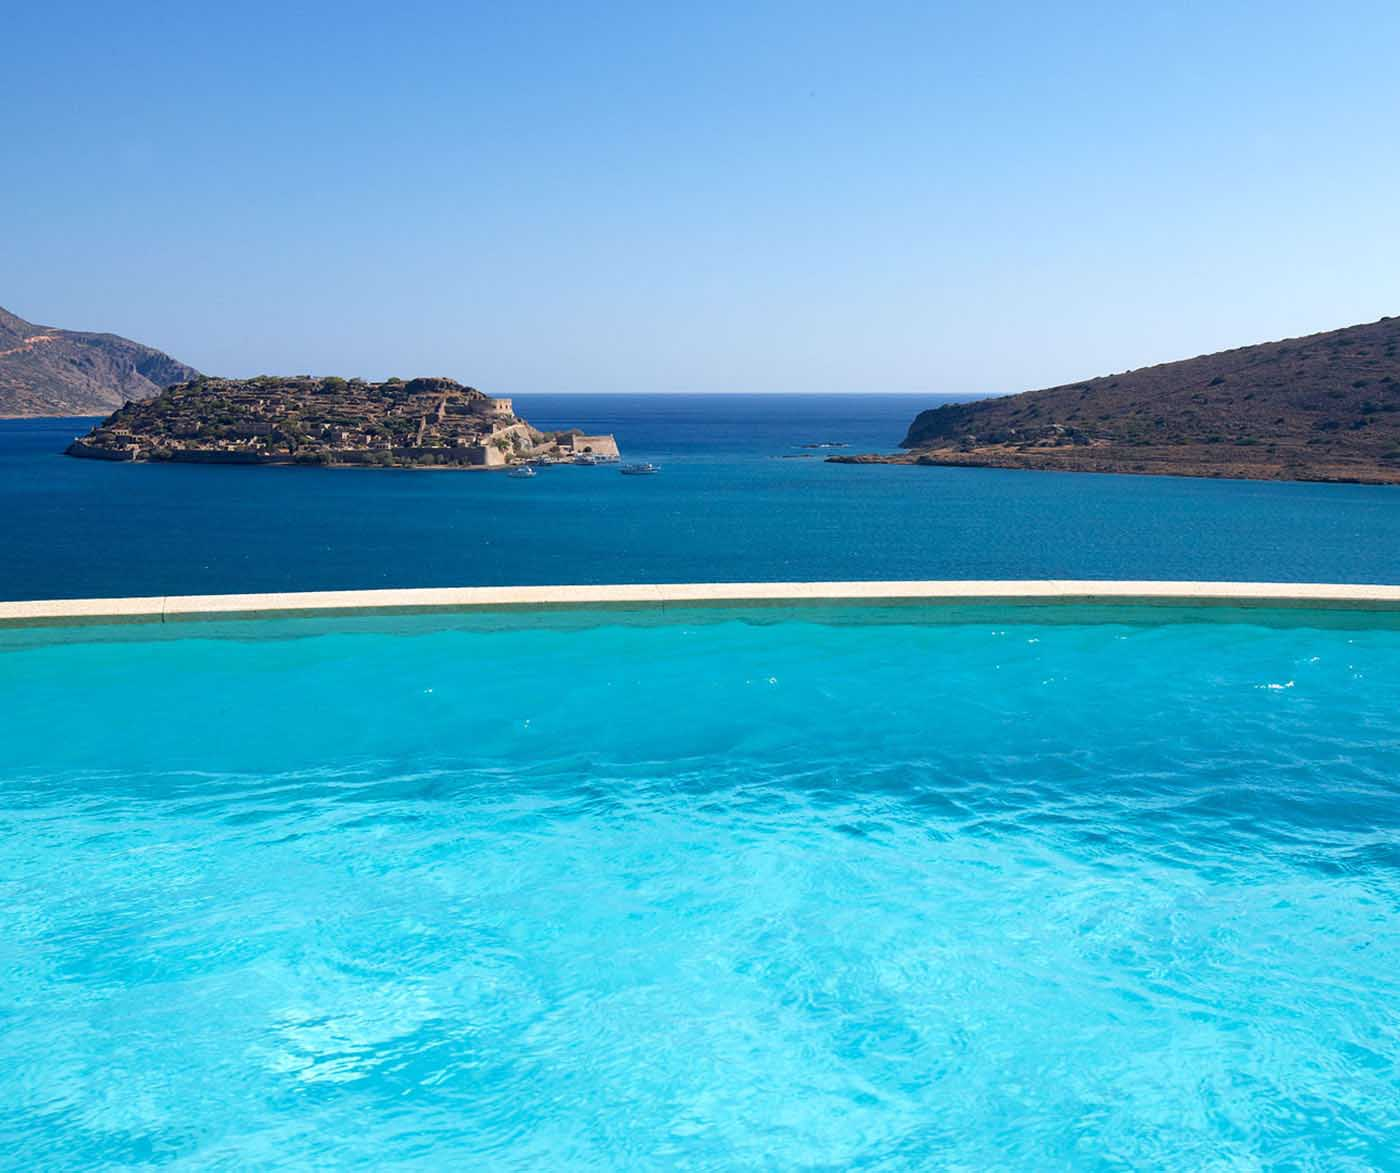 Special Offers, Elounda Hotels & Resorts, 50% discounts, promotional rates, super deals, accommodation, Crete, vacation